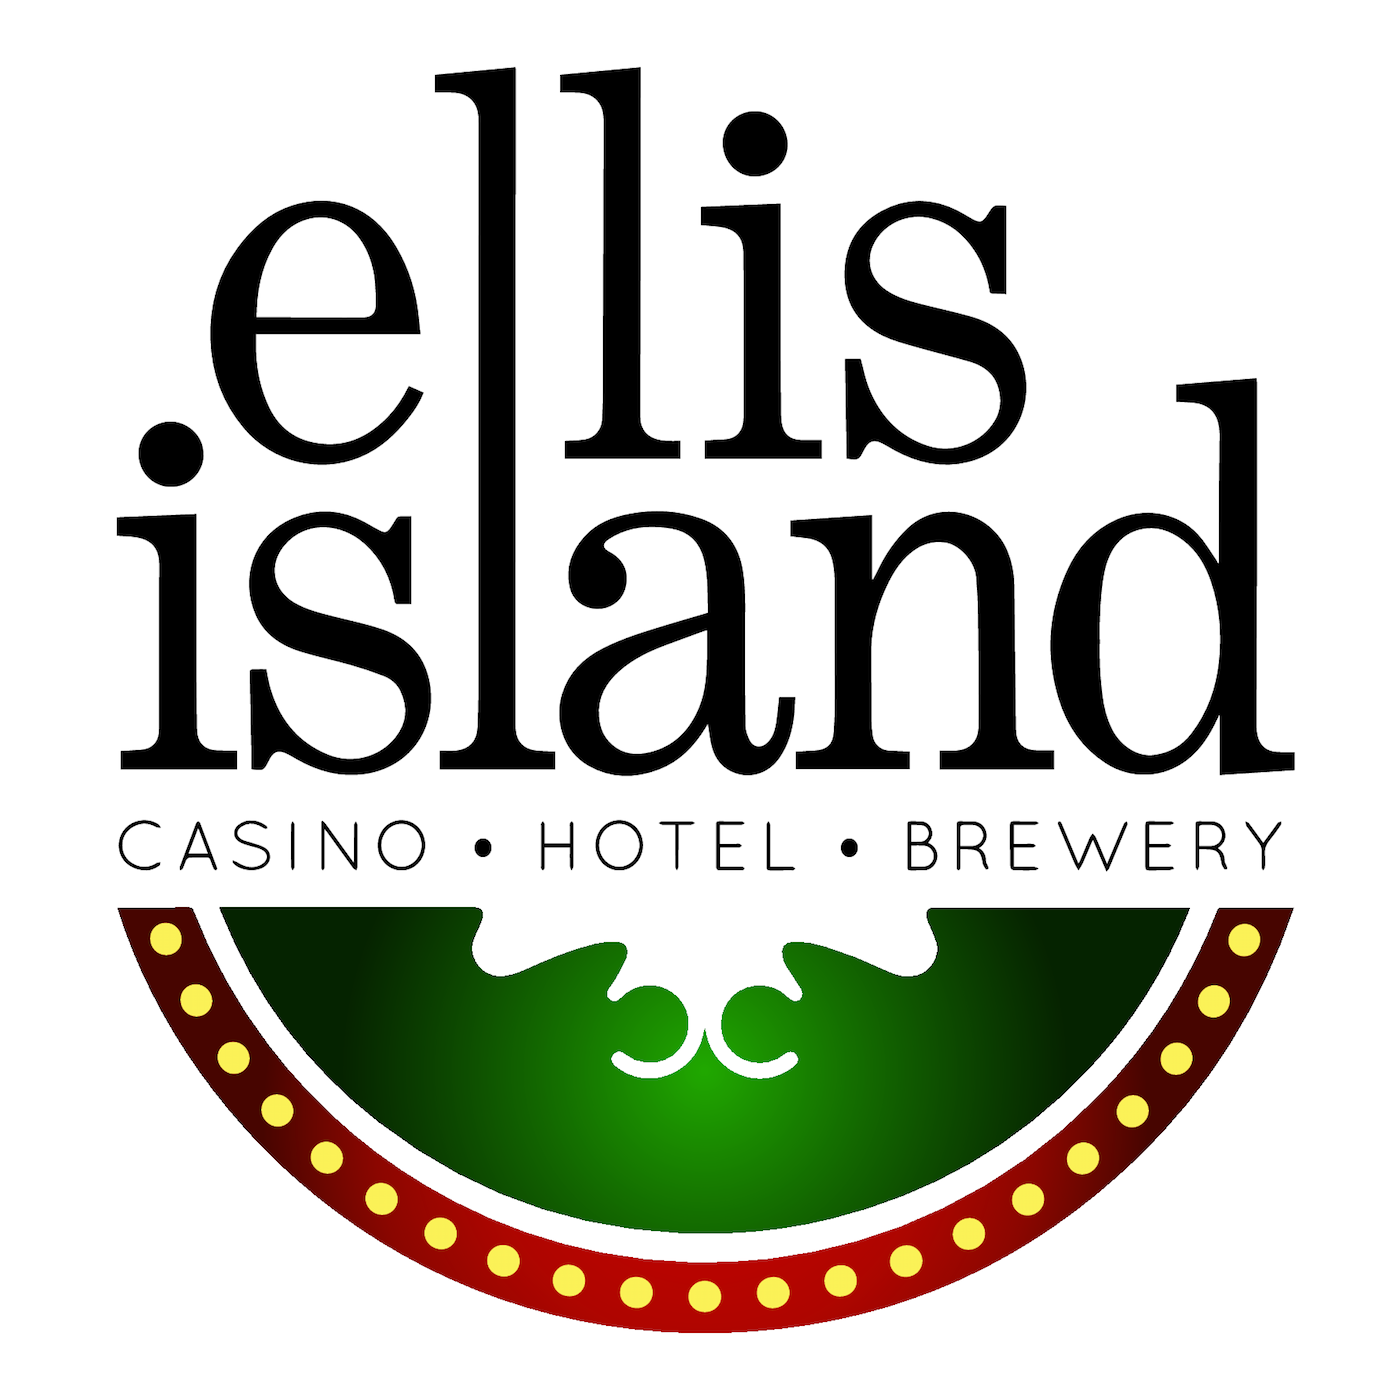 Iconic Ellis Island Hotel, Casino and Brewery to Celebrate 50th Anniversary